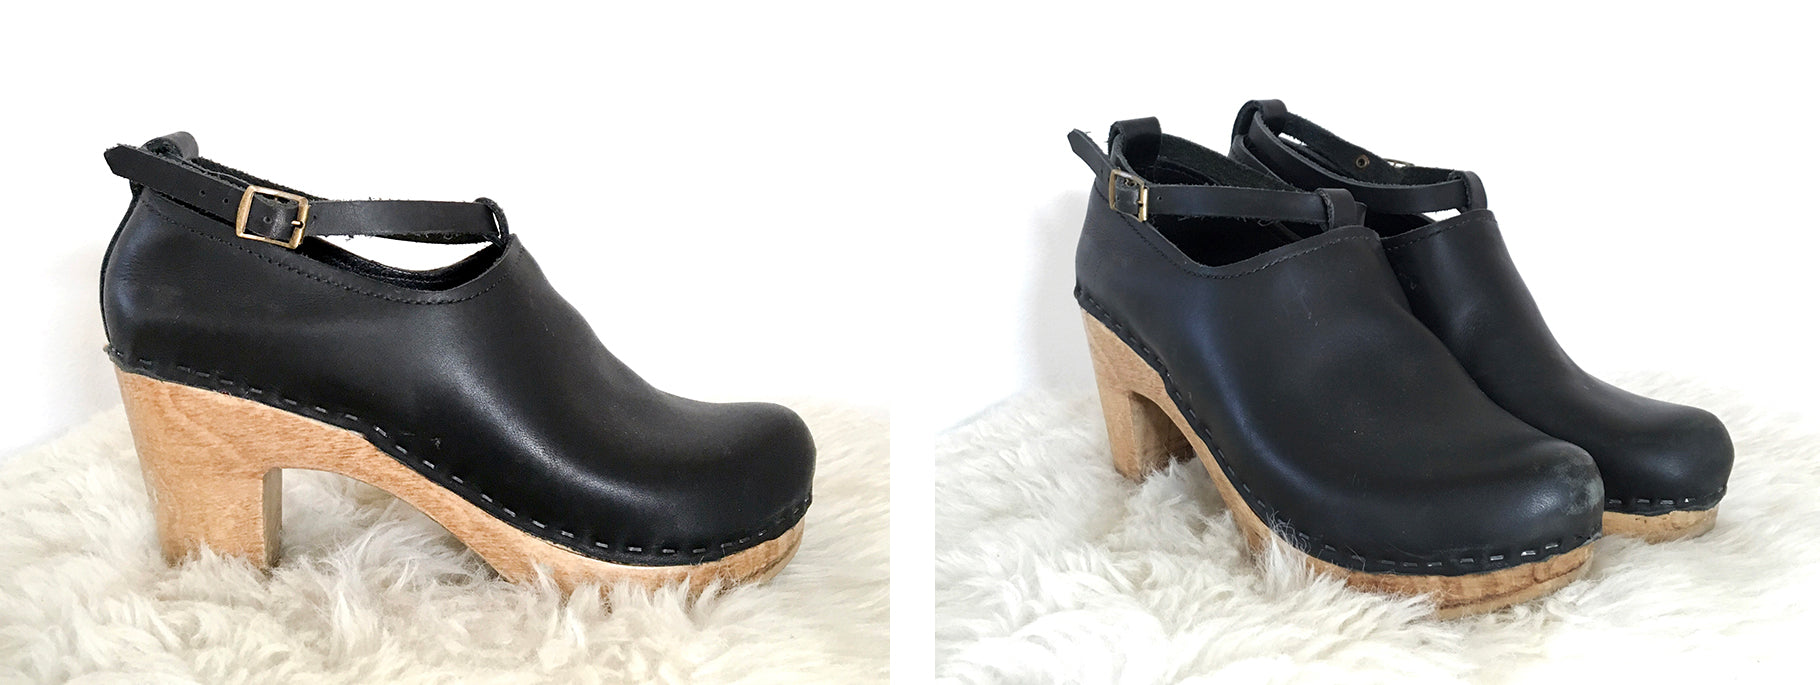 Swedish Clogs Boots Black  Clog Boot  Boots with laces  Women/'s Clogs  Troentorp Clogs  Clog Boots for Women  Morris Boot Black